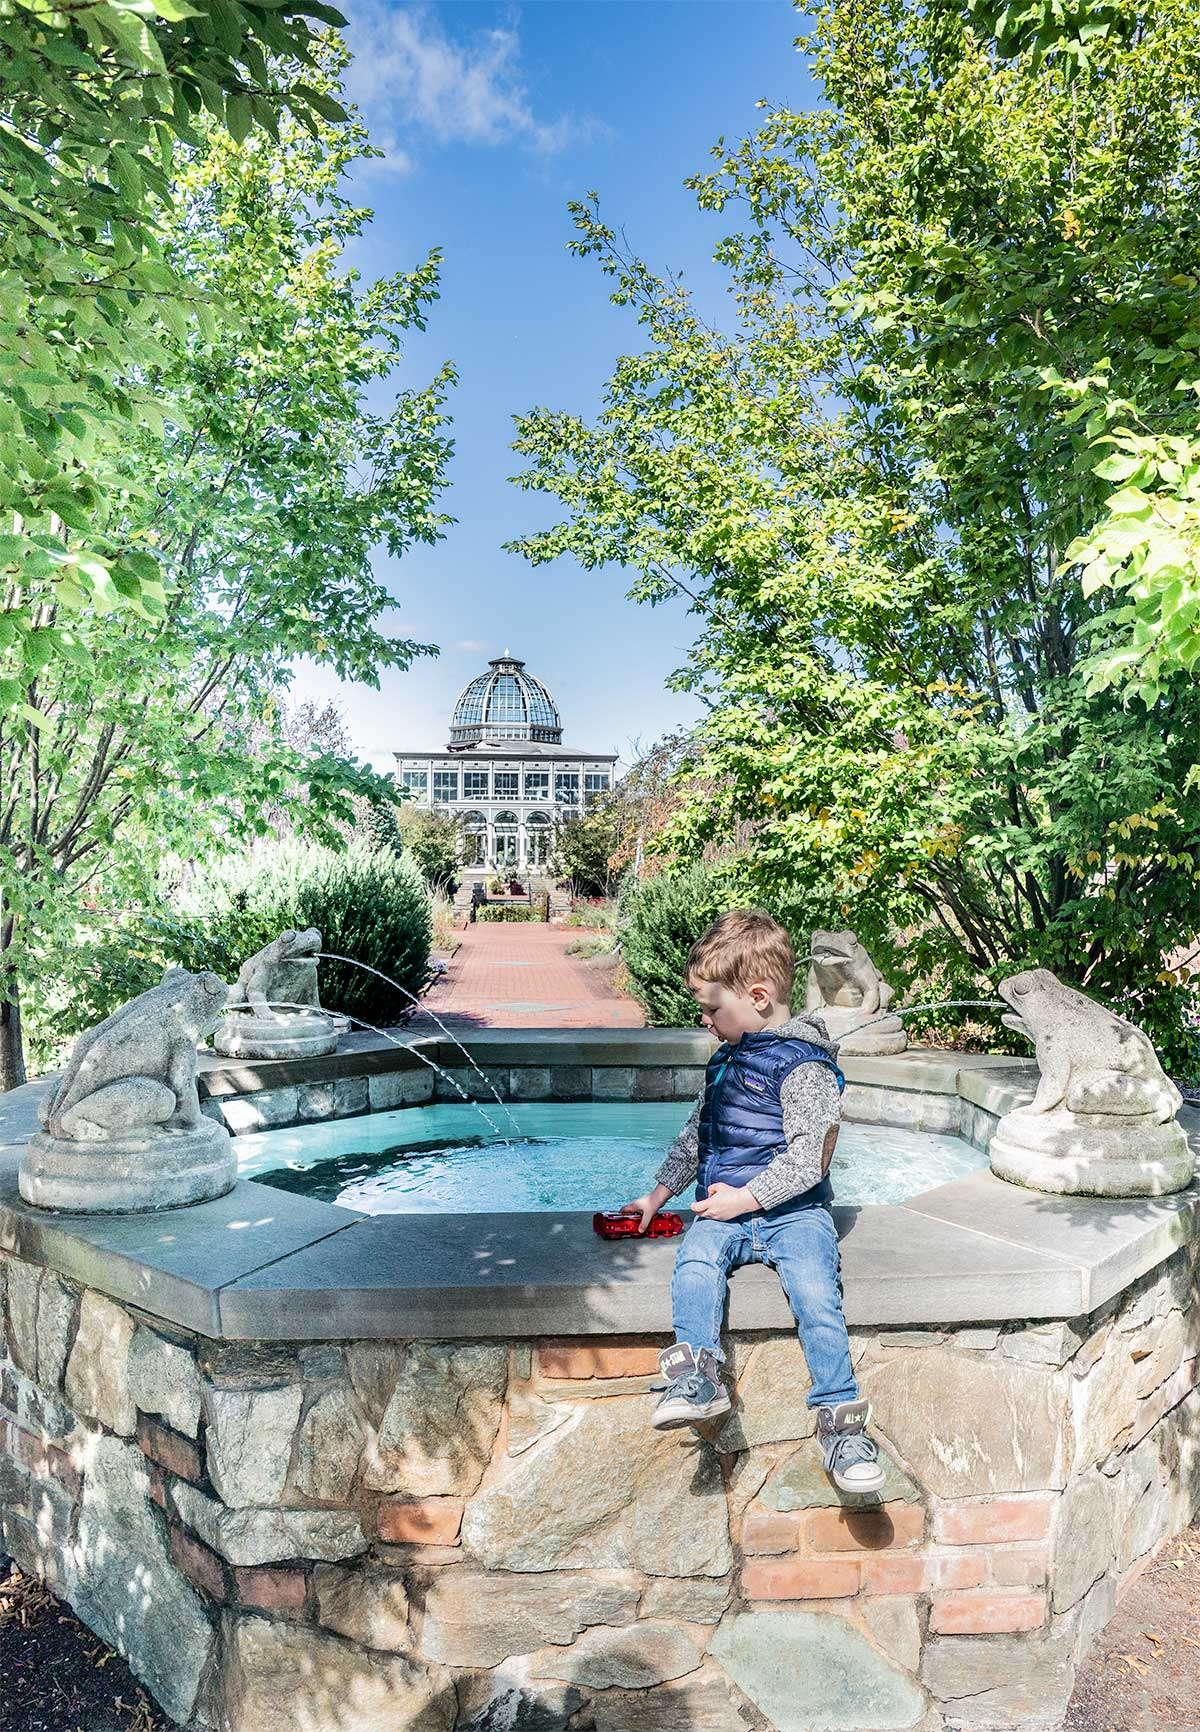 Ginter-Lewis-Botanical-Garden-Fountains-in-Richmond